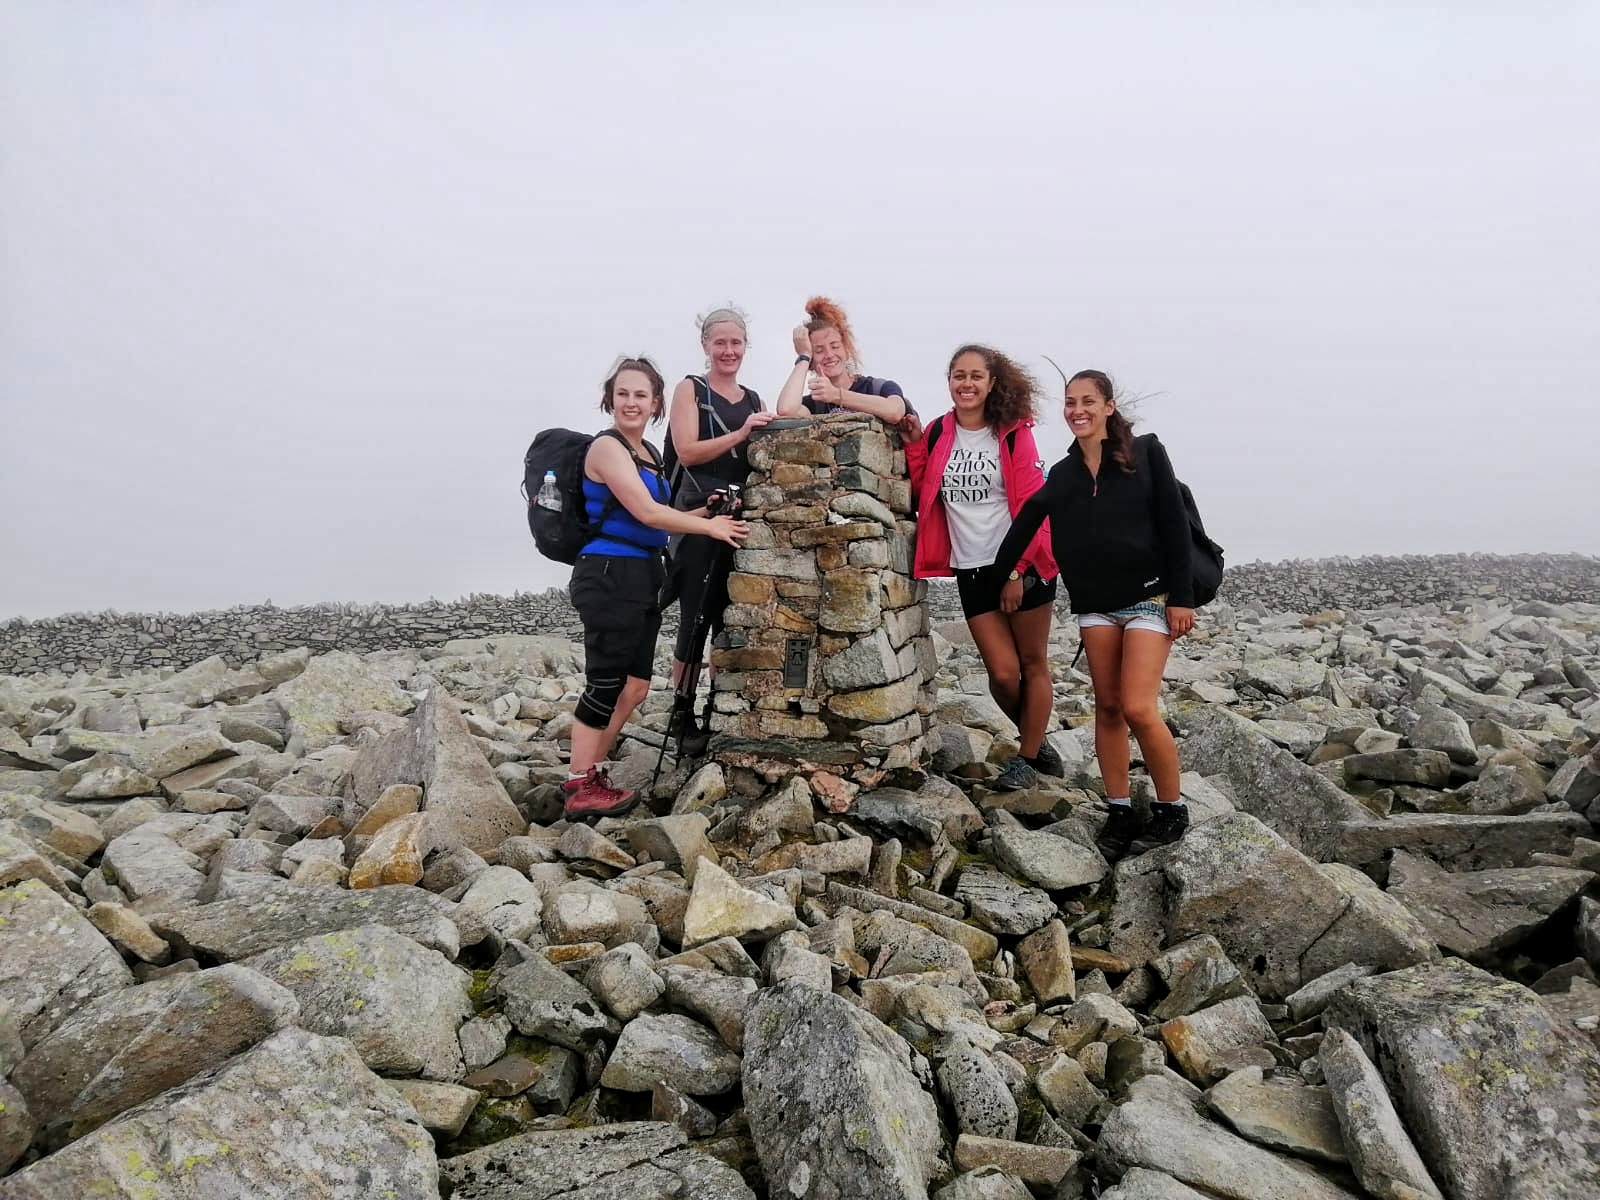 A team on the summit of Foel Fras 942m